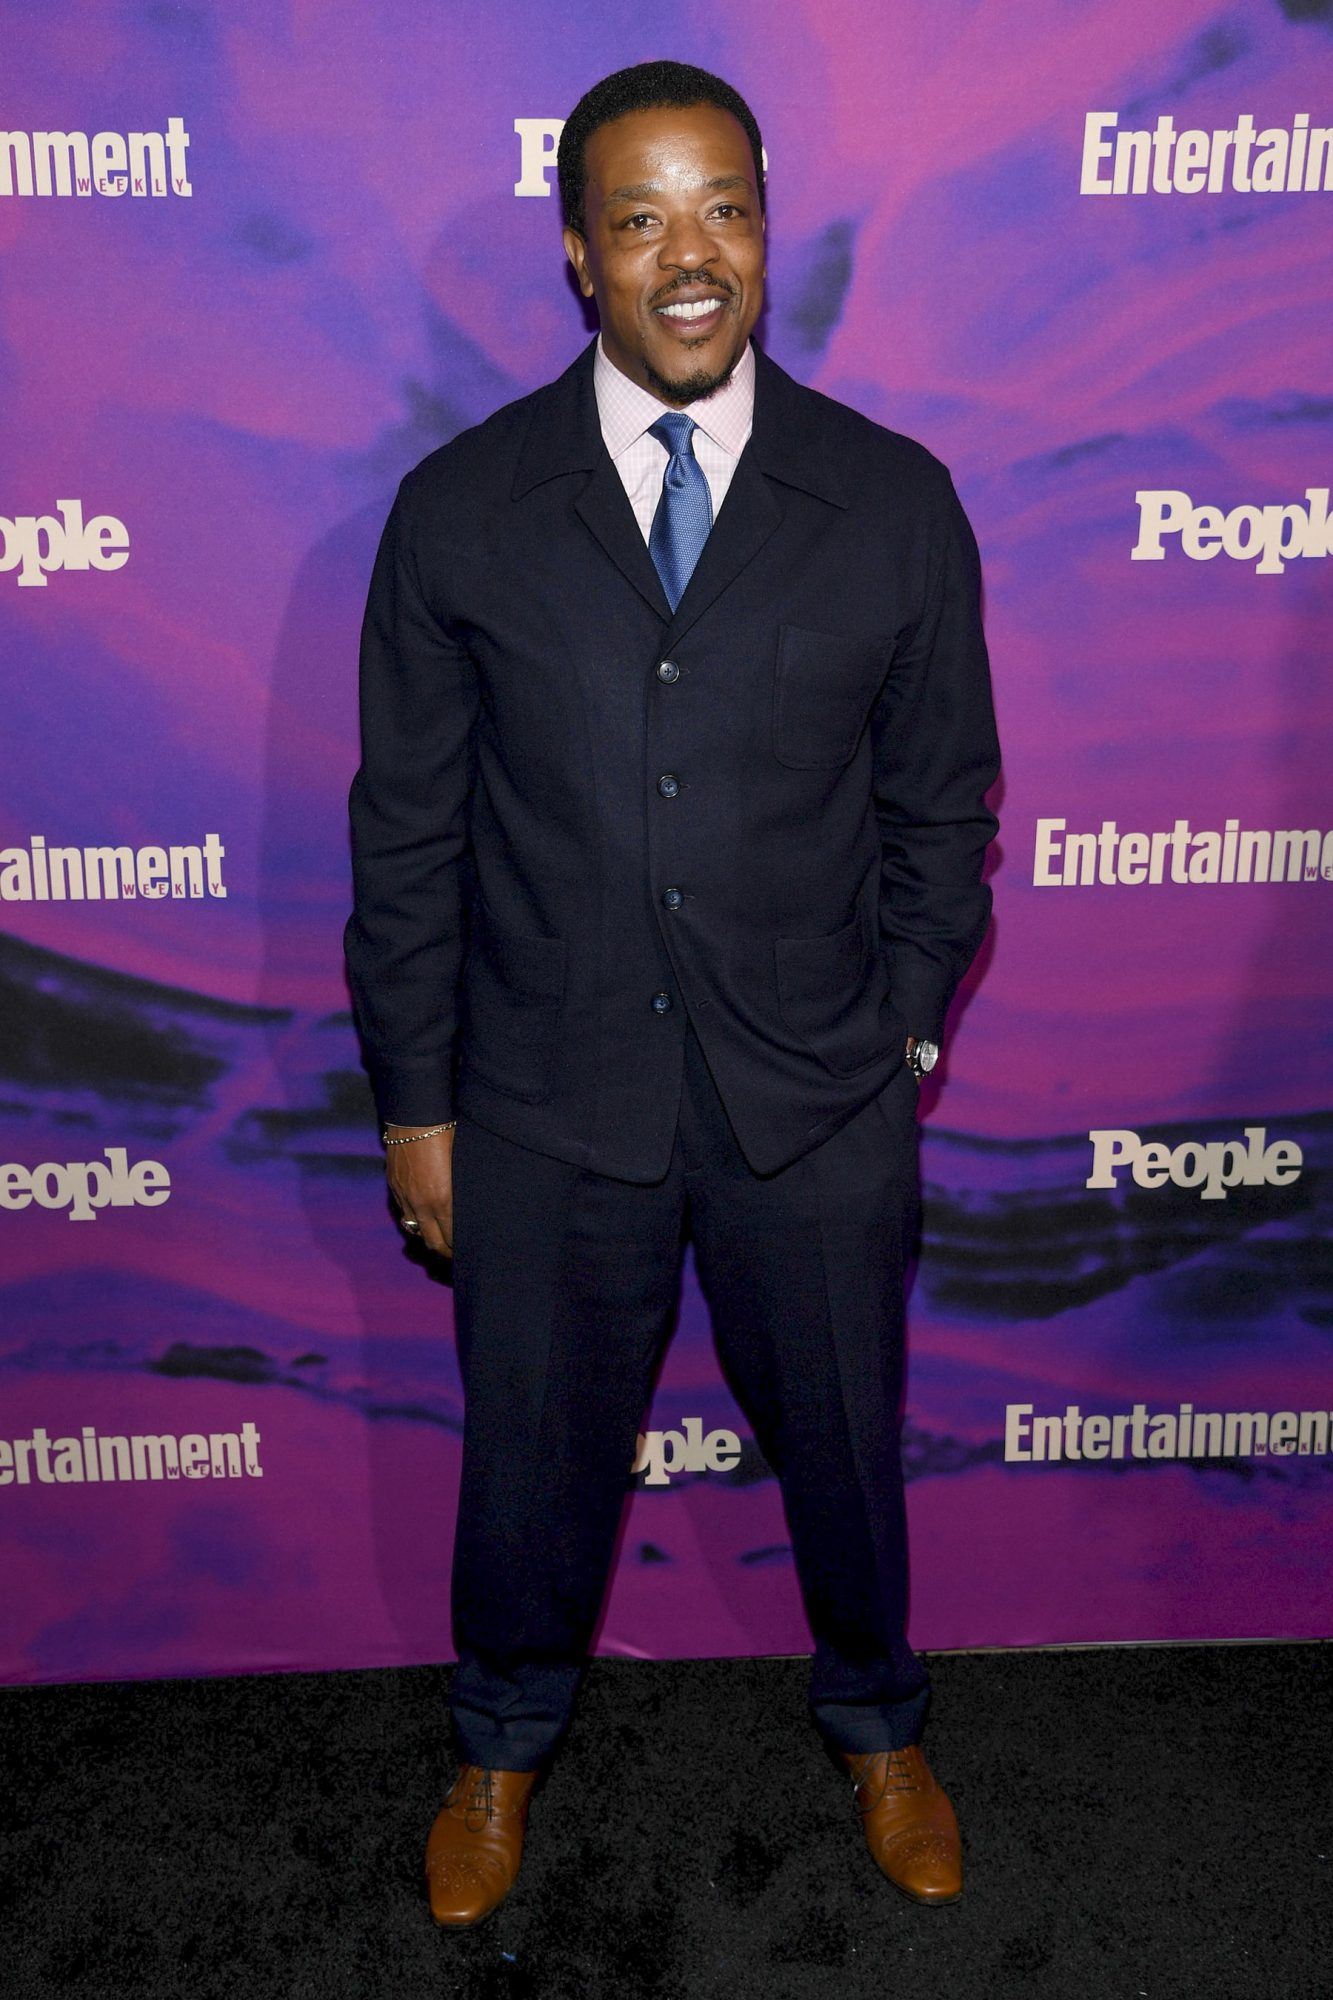 NEW YORK, NEW YORK - MAY 13: Russell Hornsby of Lincoln attends the Entertainment Weekly & PEOPLE New York Upfronts Party on May 13, 2019 in New York City. (Photo by Dimitrios Kambouris/Getty Images for Entertainment Weekly & PEOPLE)